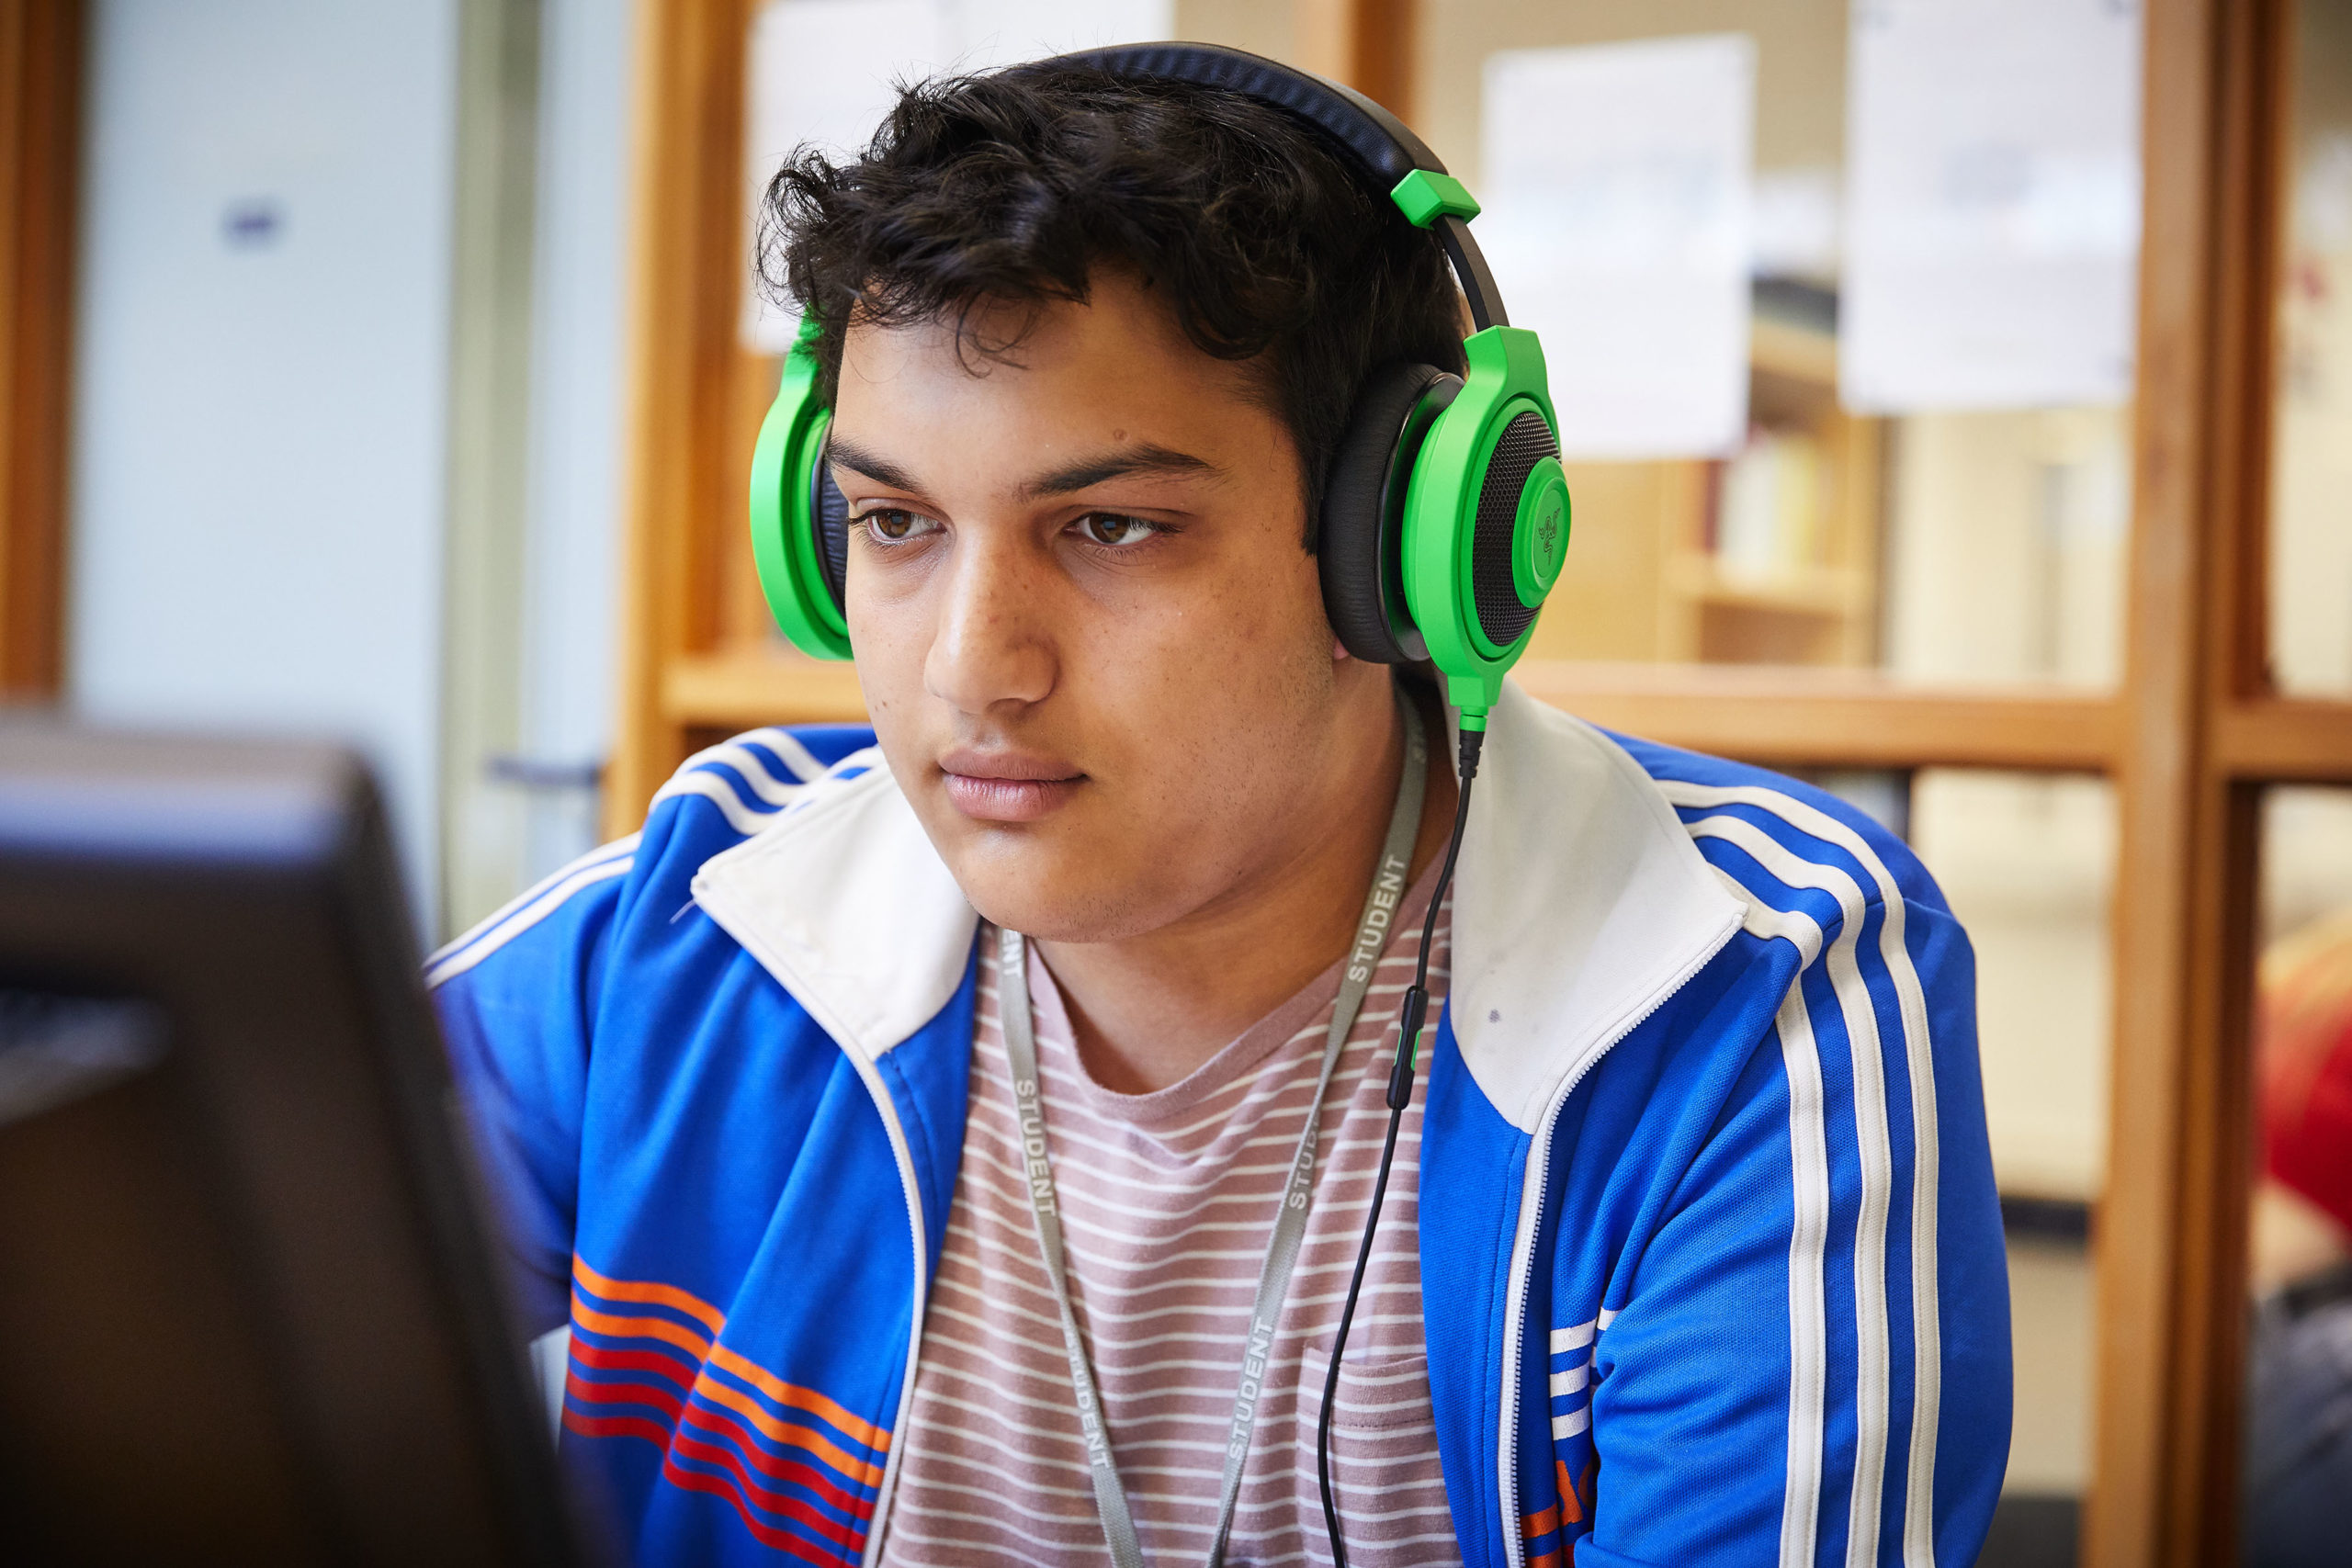 photo of student sat at desk with headphones on